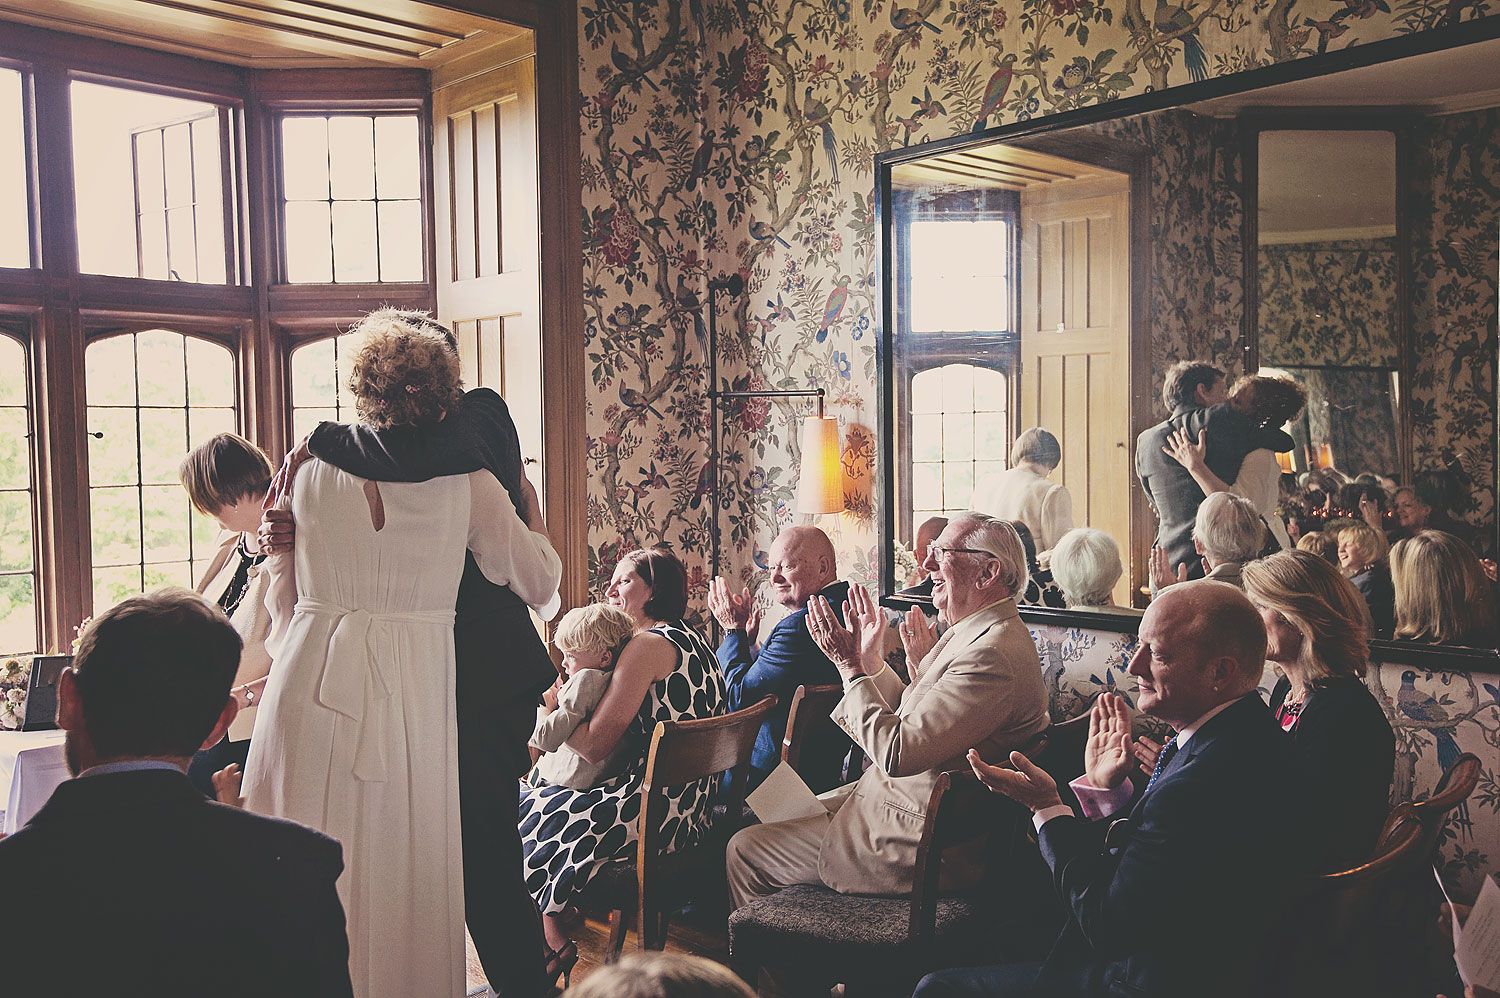 Bride and groom kiss during wedding ceremony at Hotel Endsleigh in Devon